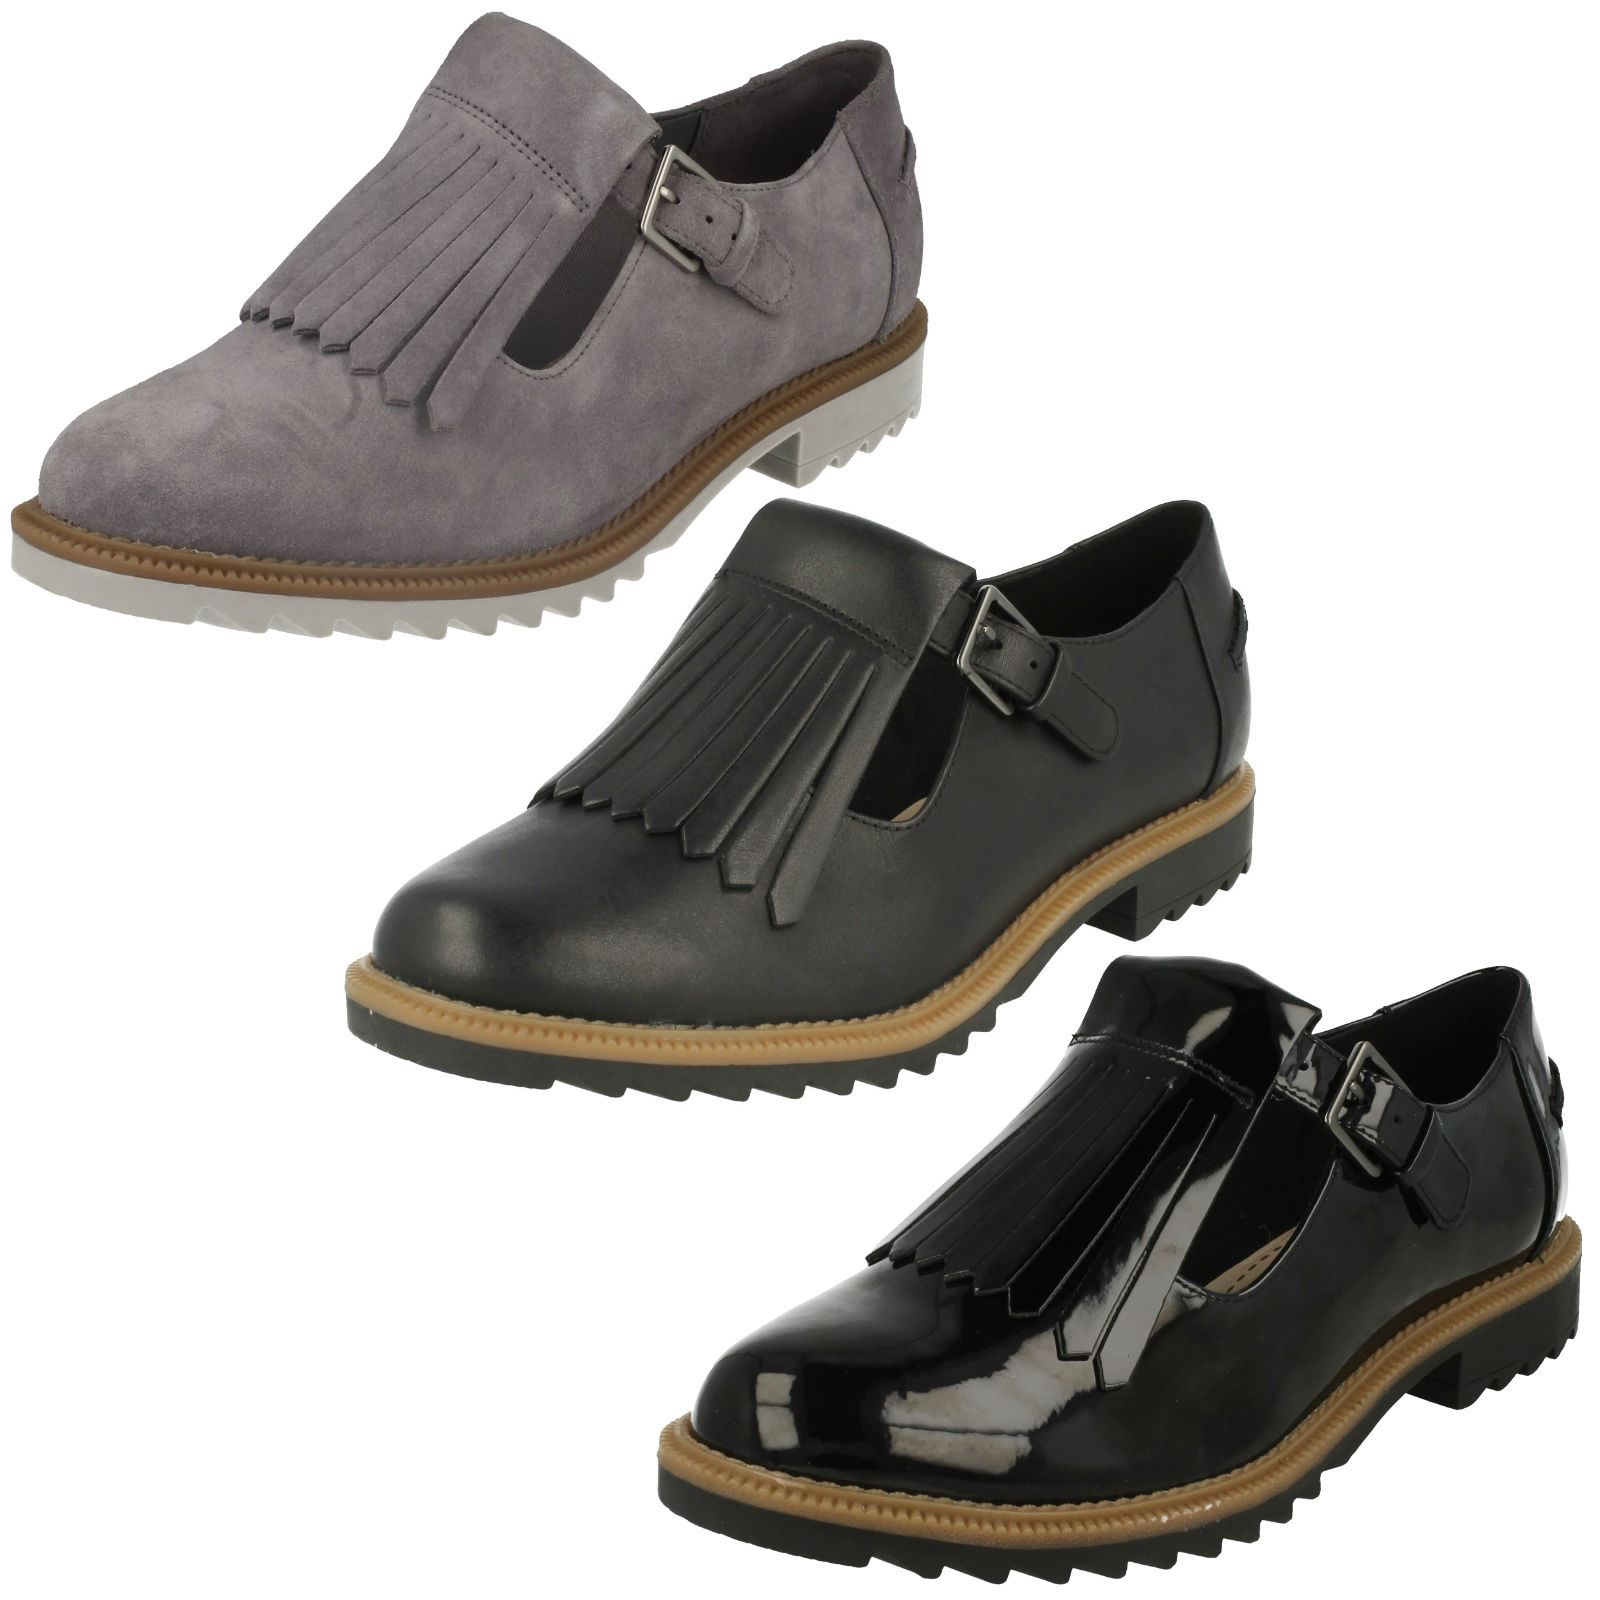 Ladies Clarks T-Bar Buckled Wedge Heel Soft Leather Fringe Flats Griffin Mia